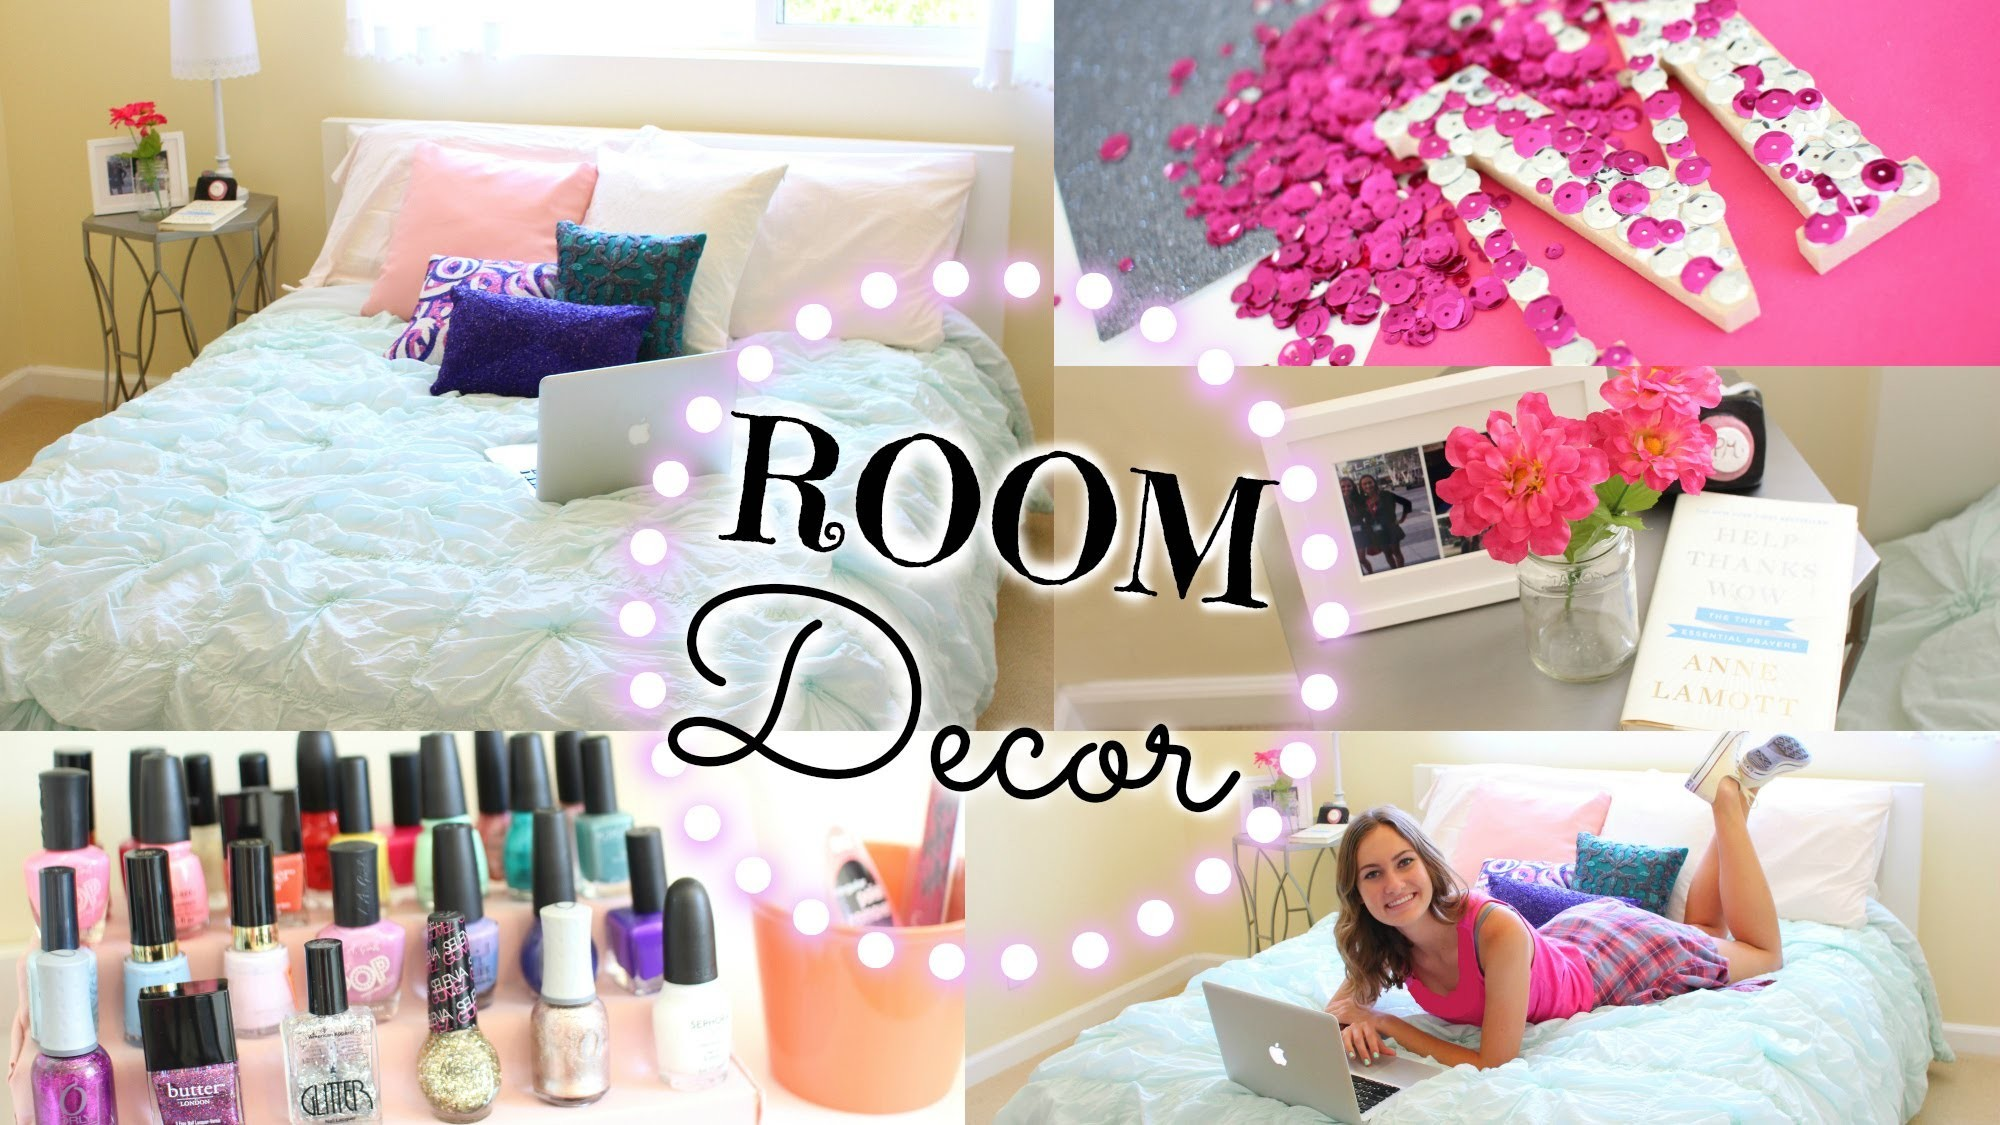 Easy DIY Ways to Re-Decorate Your Room!